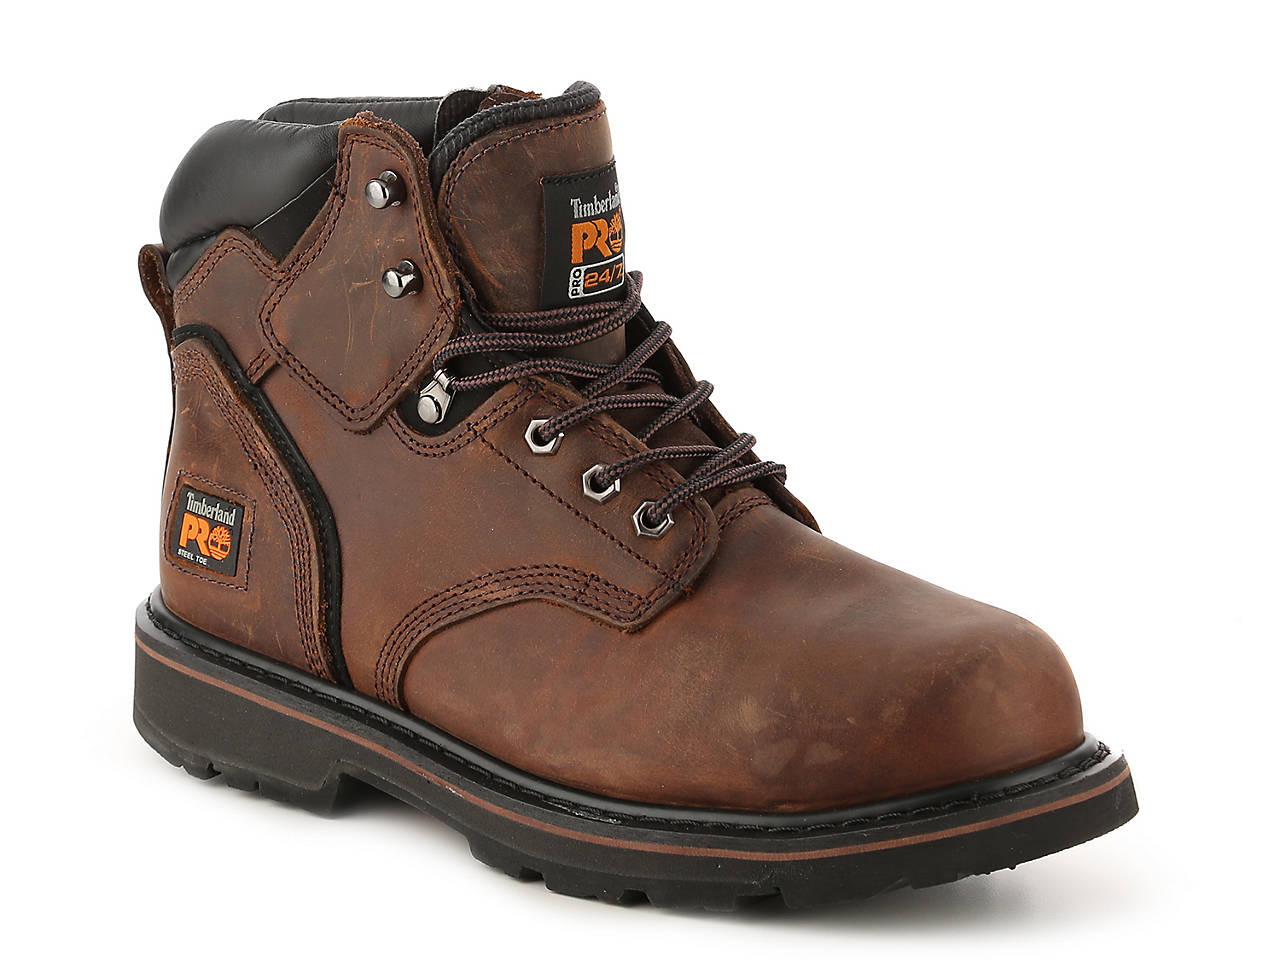 Timberland PRO Pit Boss Steel Toe Work Boot Men's Shoes | DSW